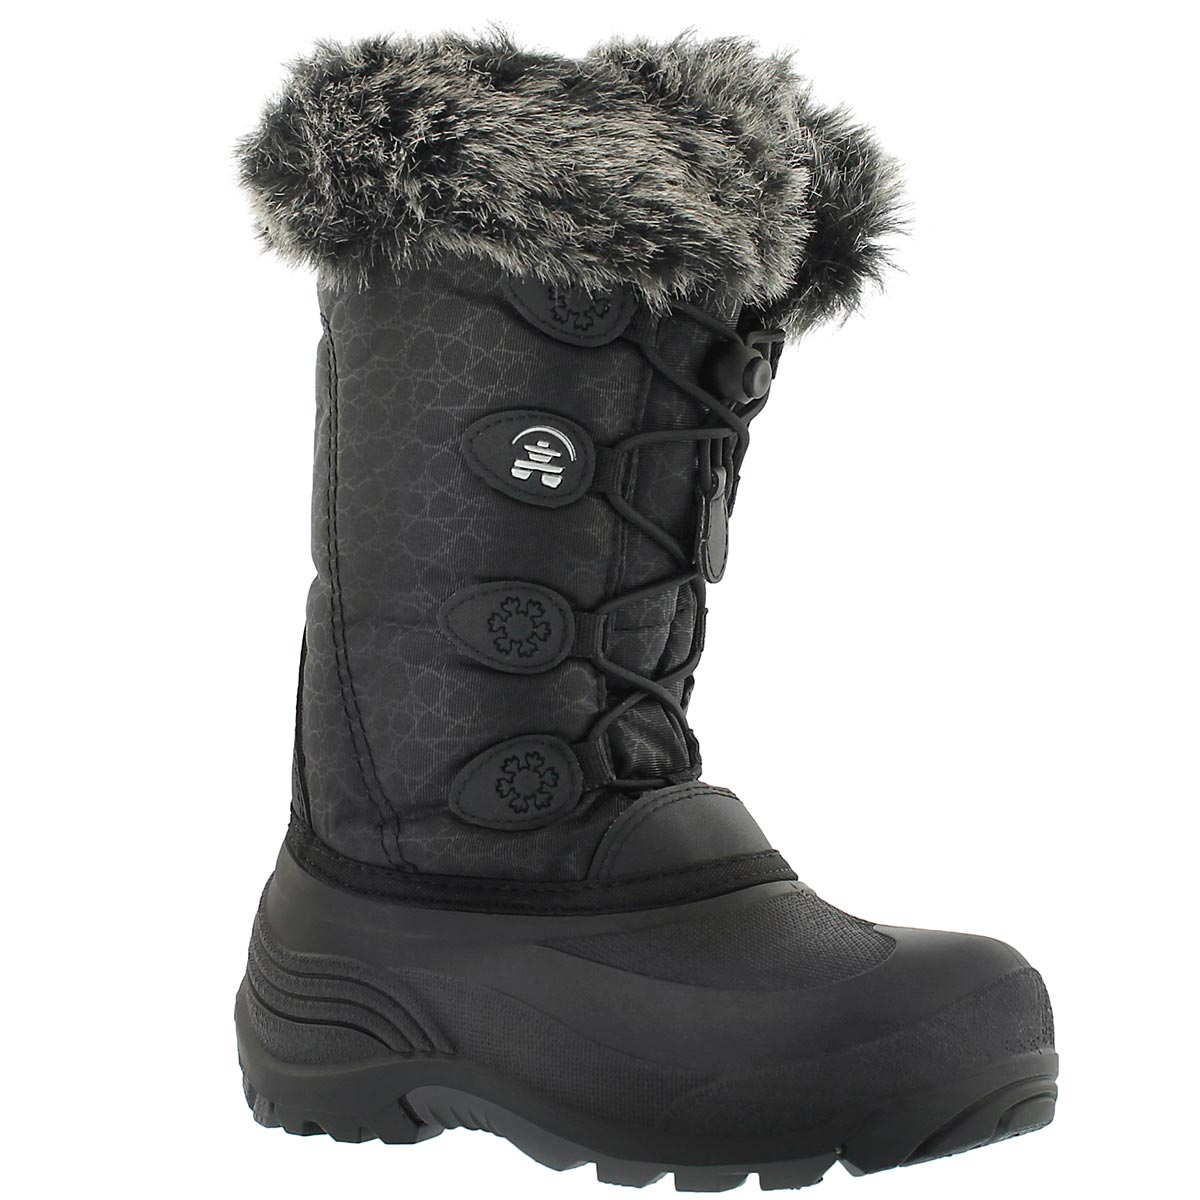 Girls' SNOWGYPSY black winter boots